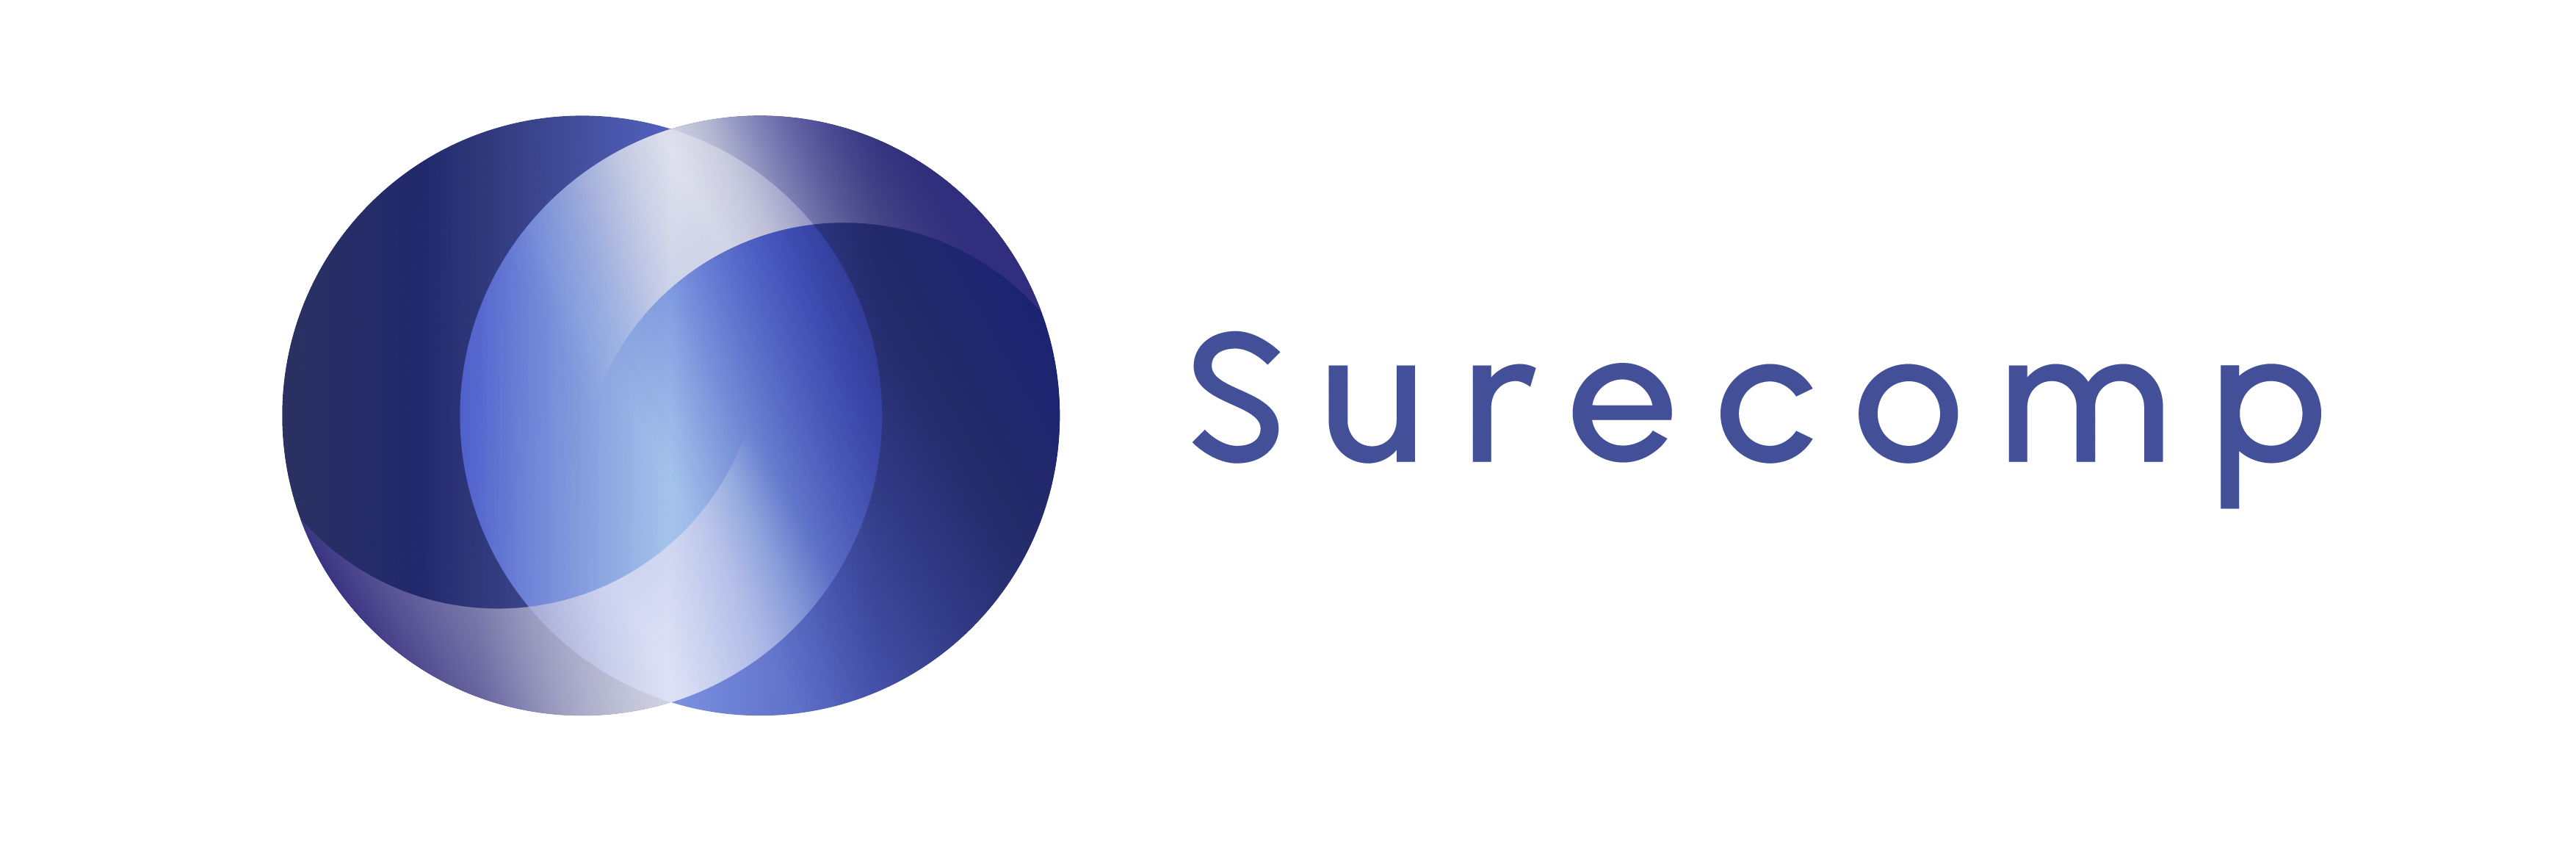 Surecomp Enables Absa Group's Roll Out of pan-African Trade Finance Digitisation Across 10 Countries